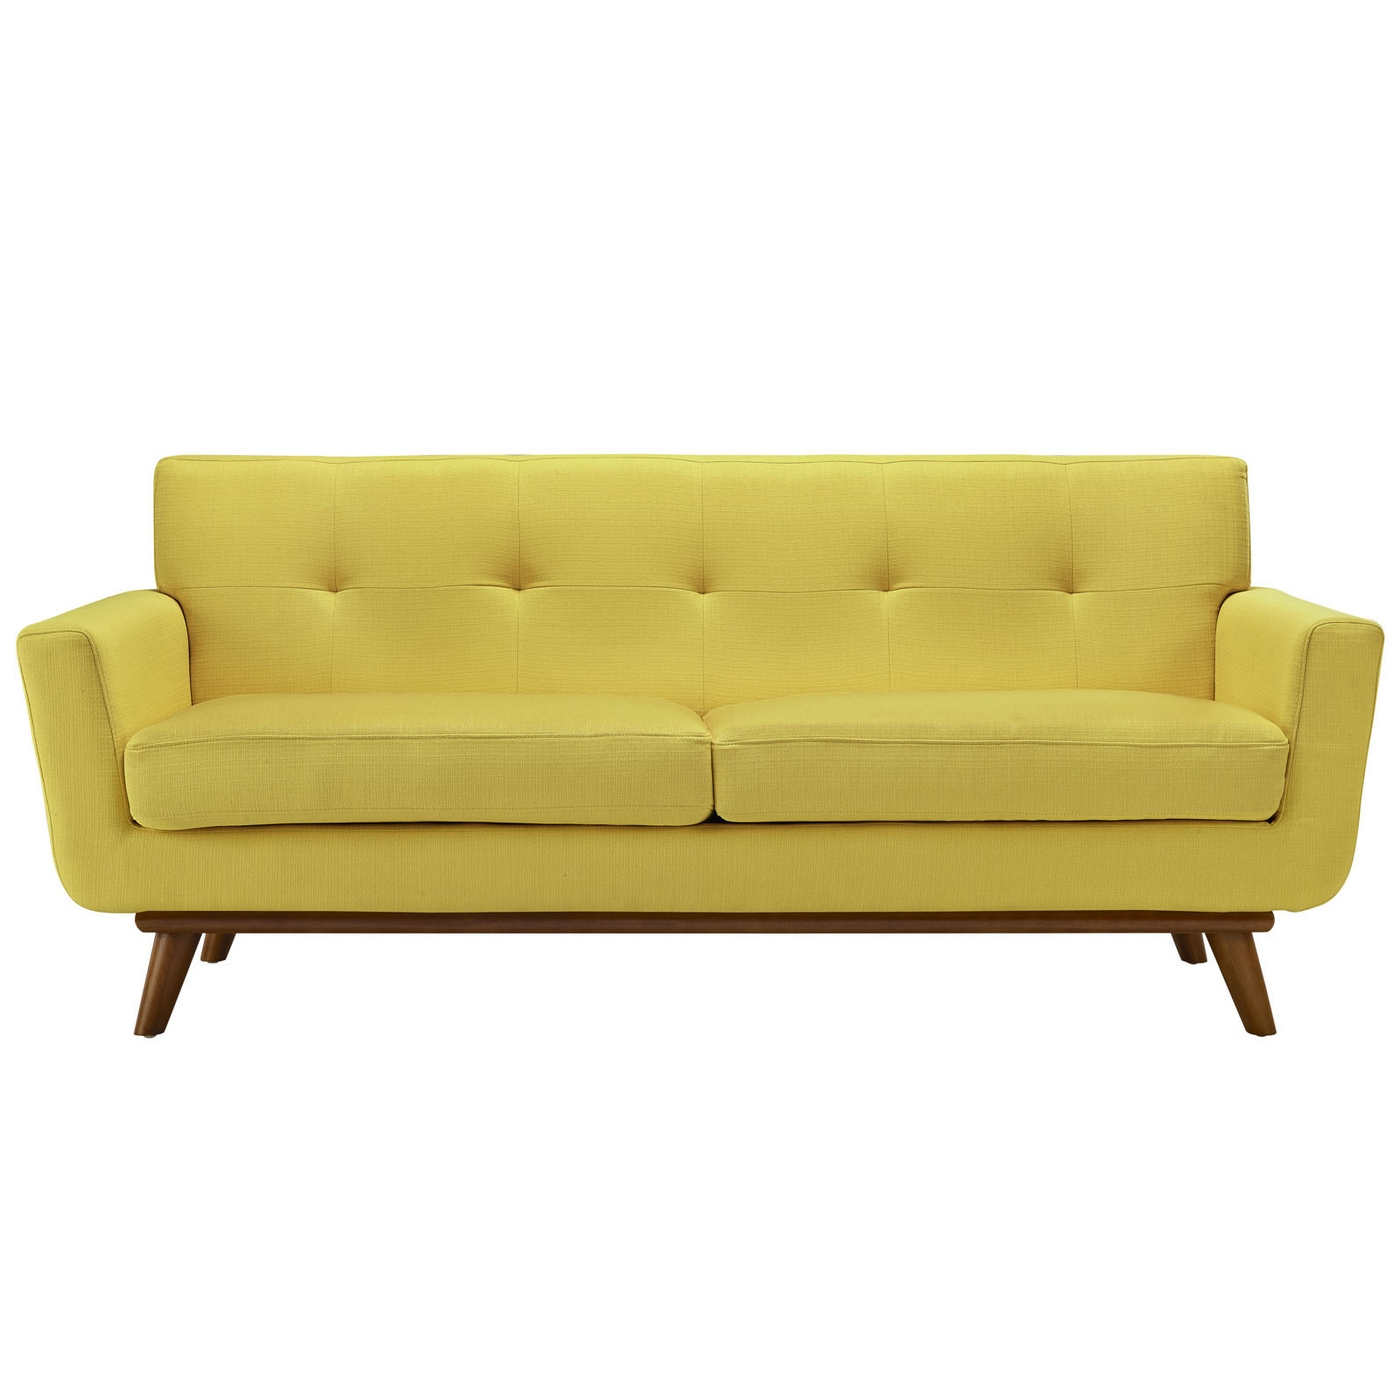 Engage contemporary upholstered loveseat with wooden legs for Modern loveseat